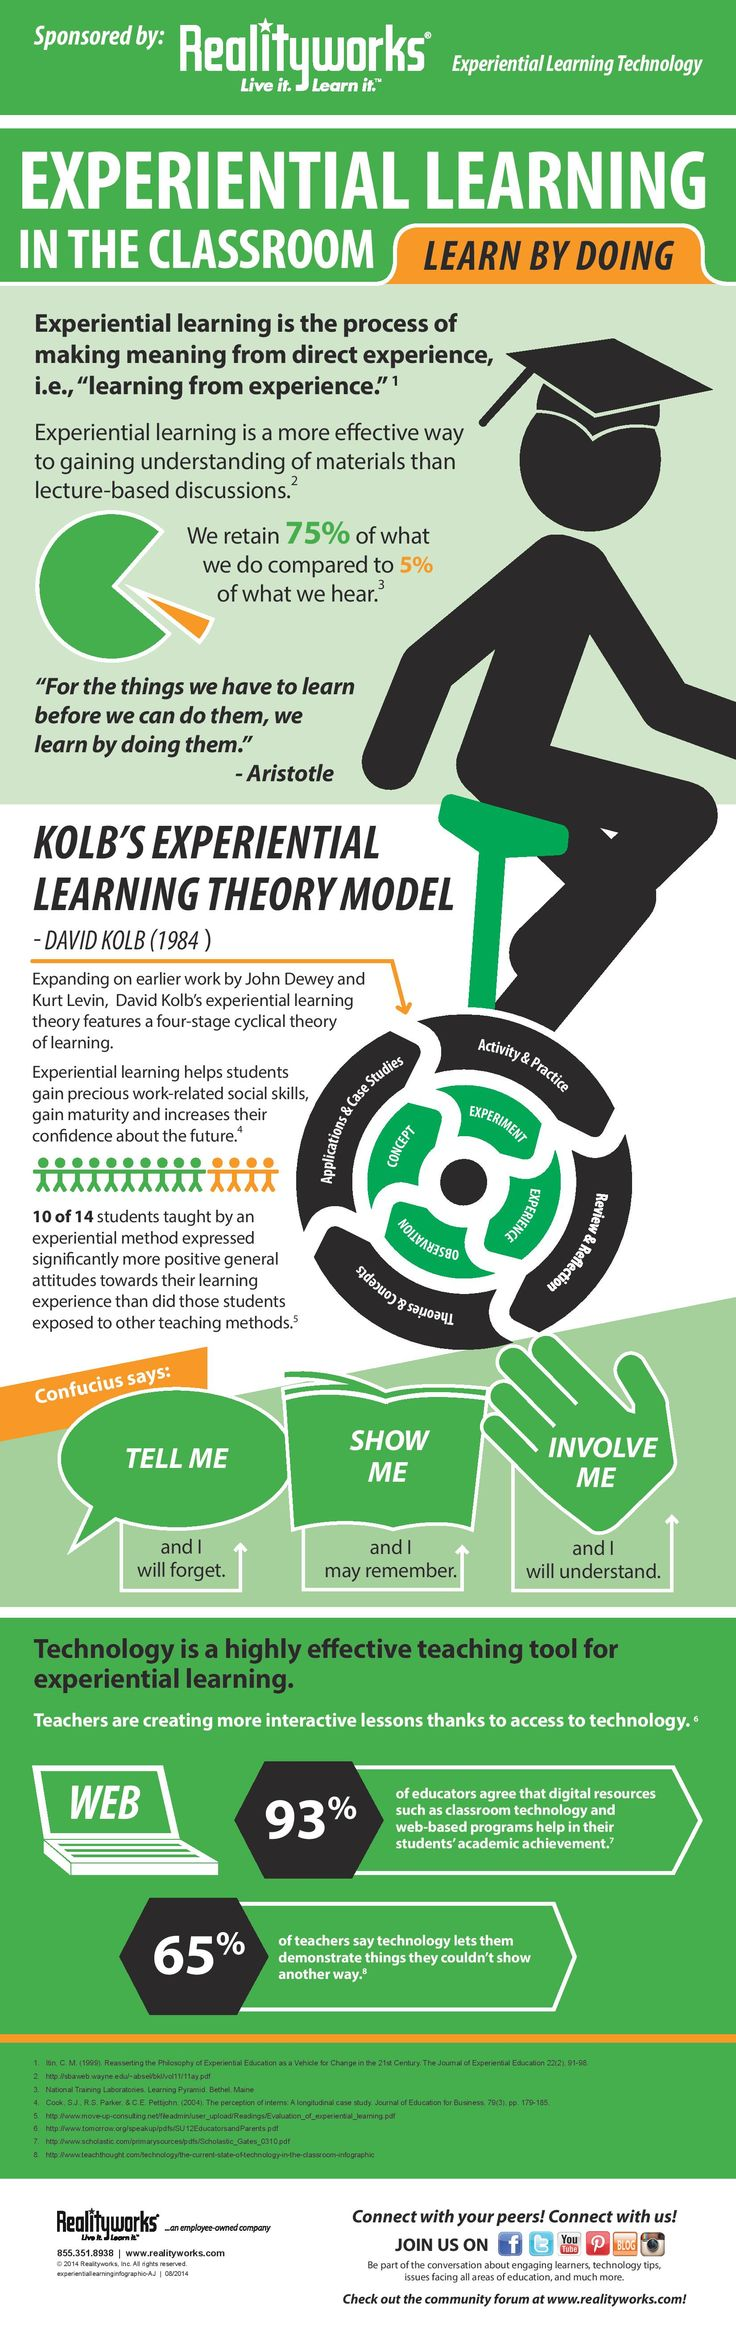 Experiential Learning in The Classroom Infographic - http://elearninginfographics.com/experiential-learning-classroom-infographic/